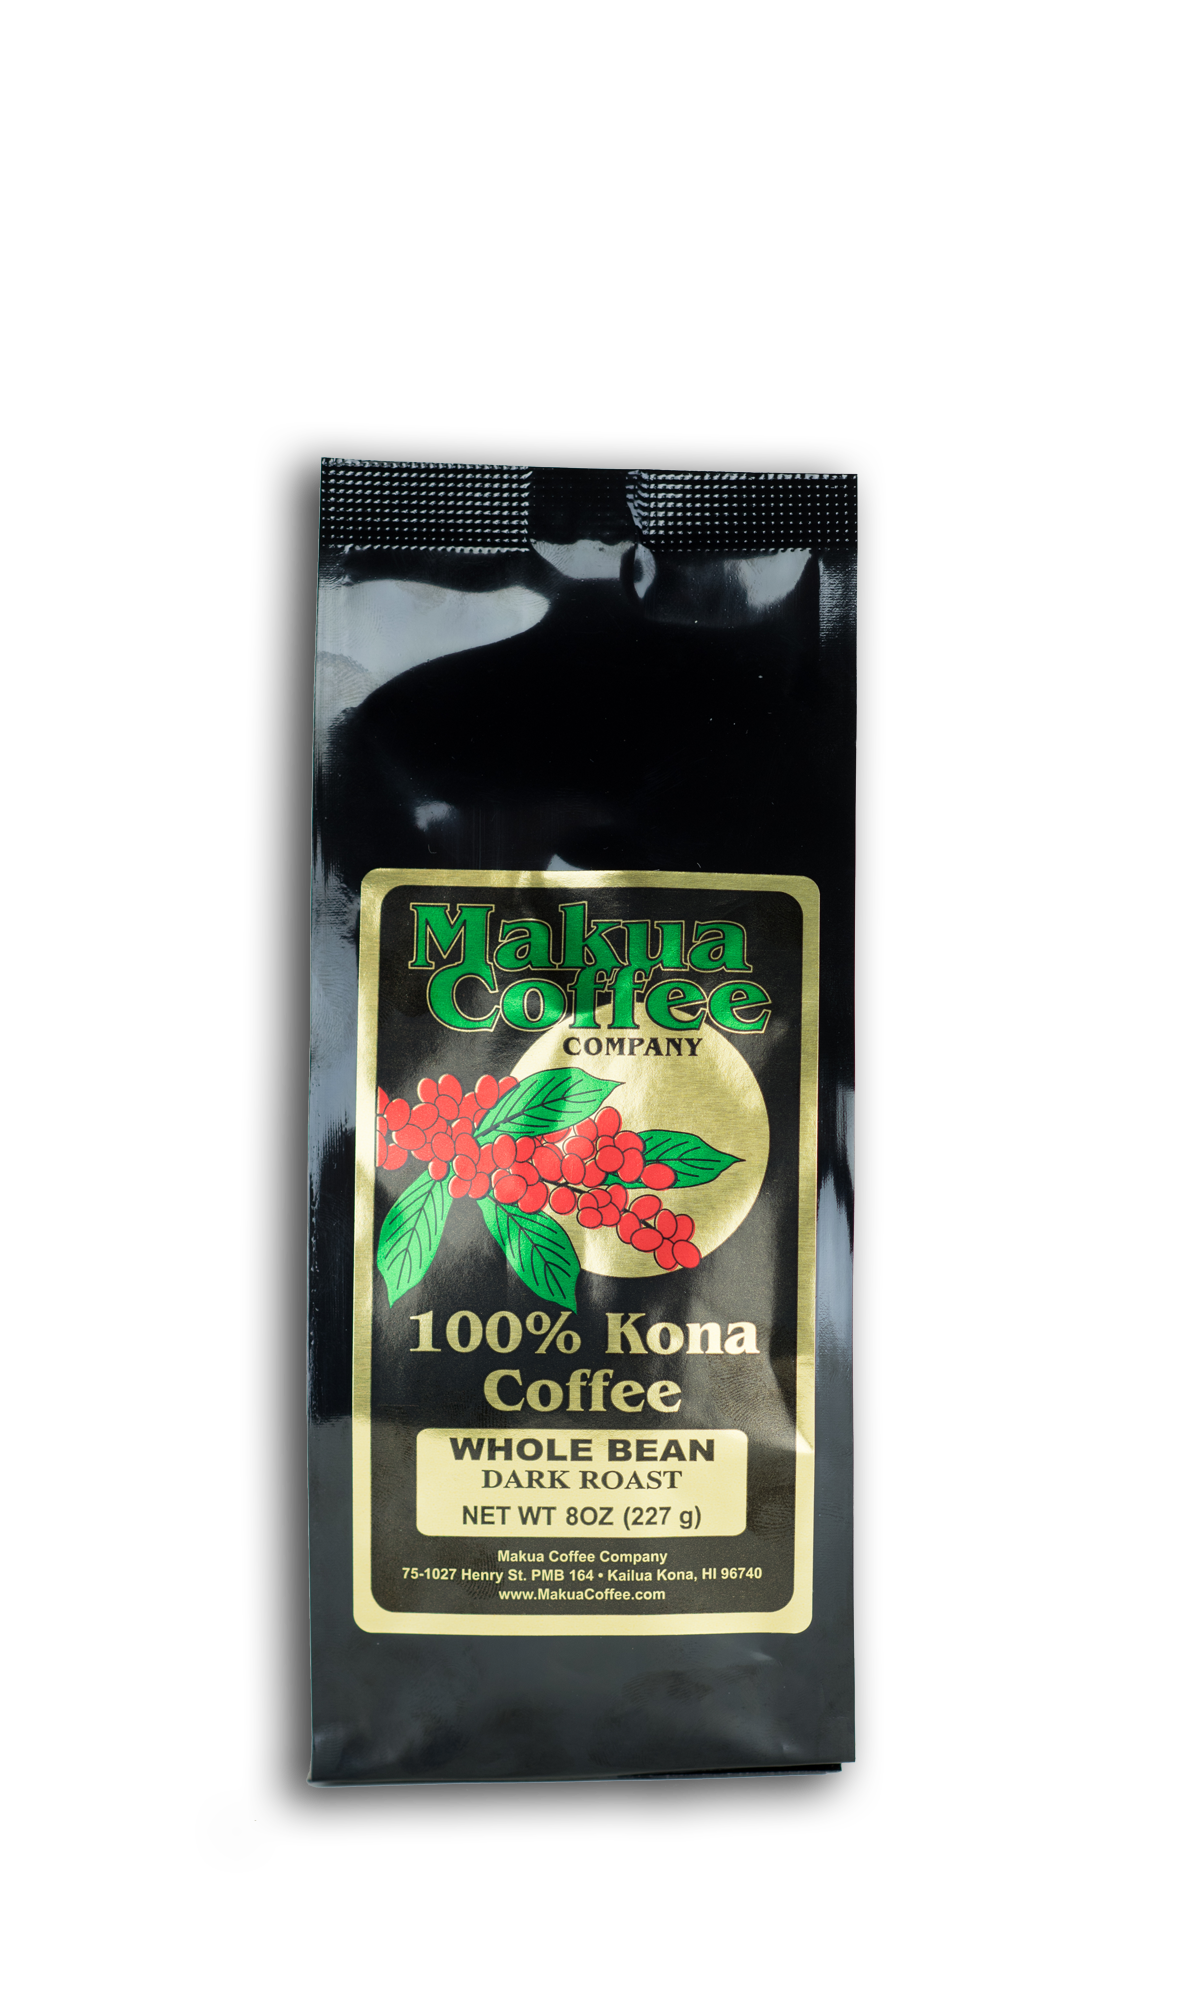 Makua Coffee Company 100% Kona Coffee Dark Roast Whole Bean Coffee 8 oz bag